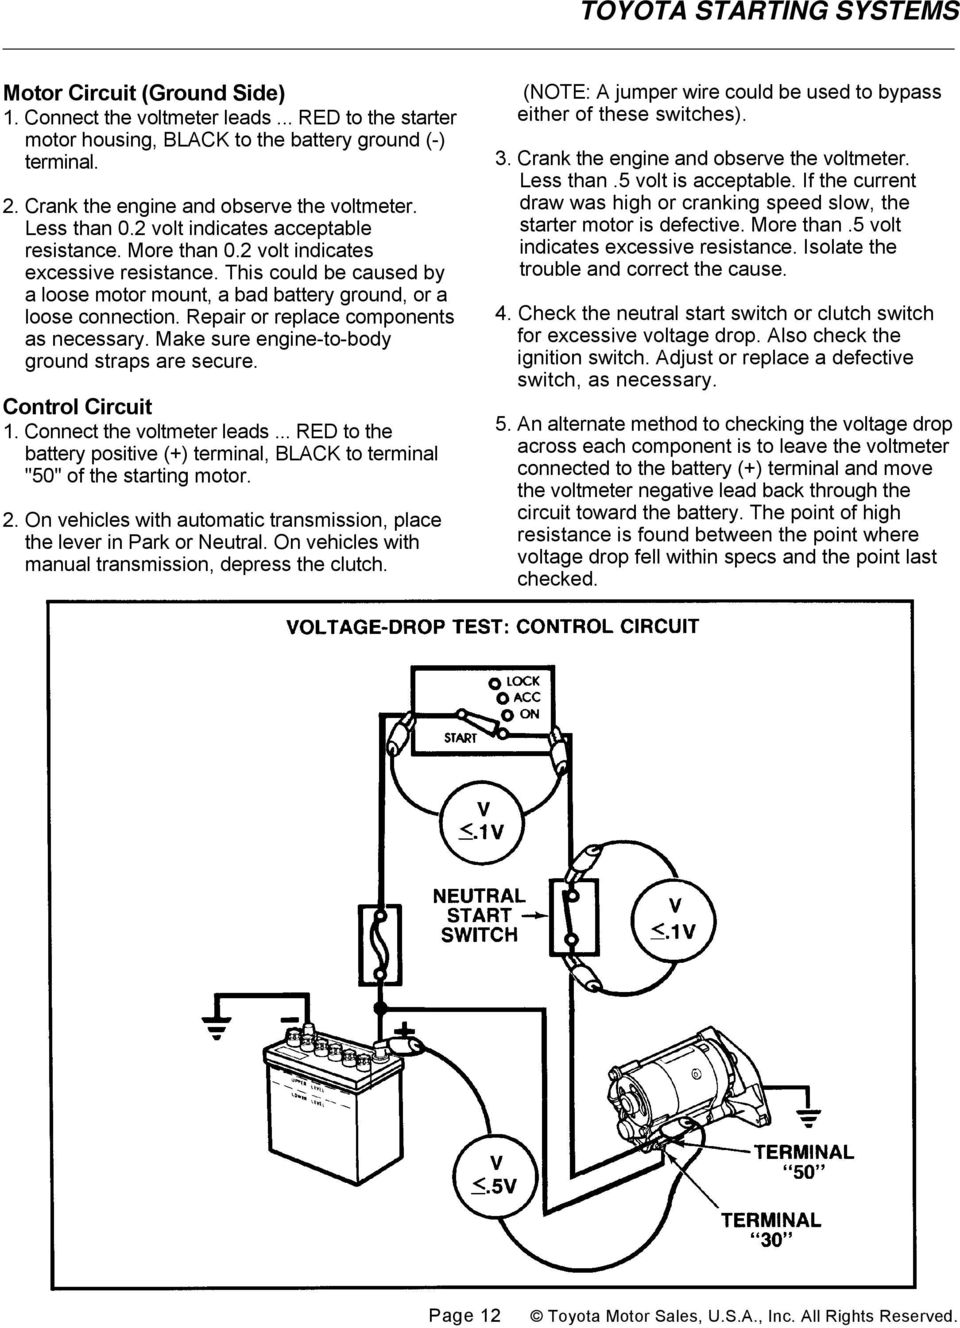 Toyota Starting Systems General Pdf Manual Transmission Clutch Diagram Parts Mpc Repair Or Replace Components As Necessary Make Sure Engine To Body Ground Straps